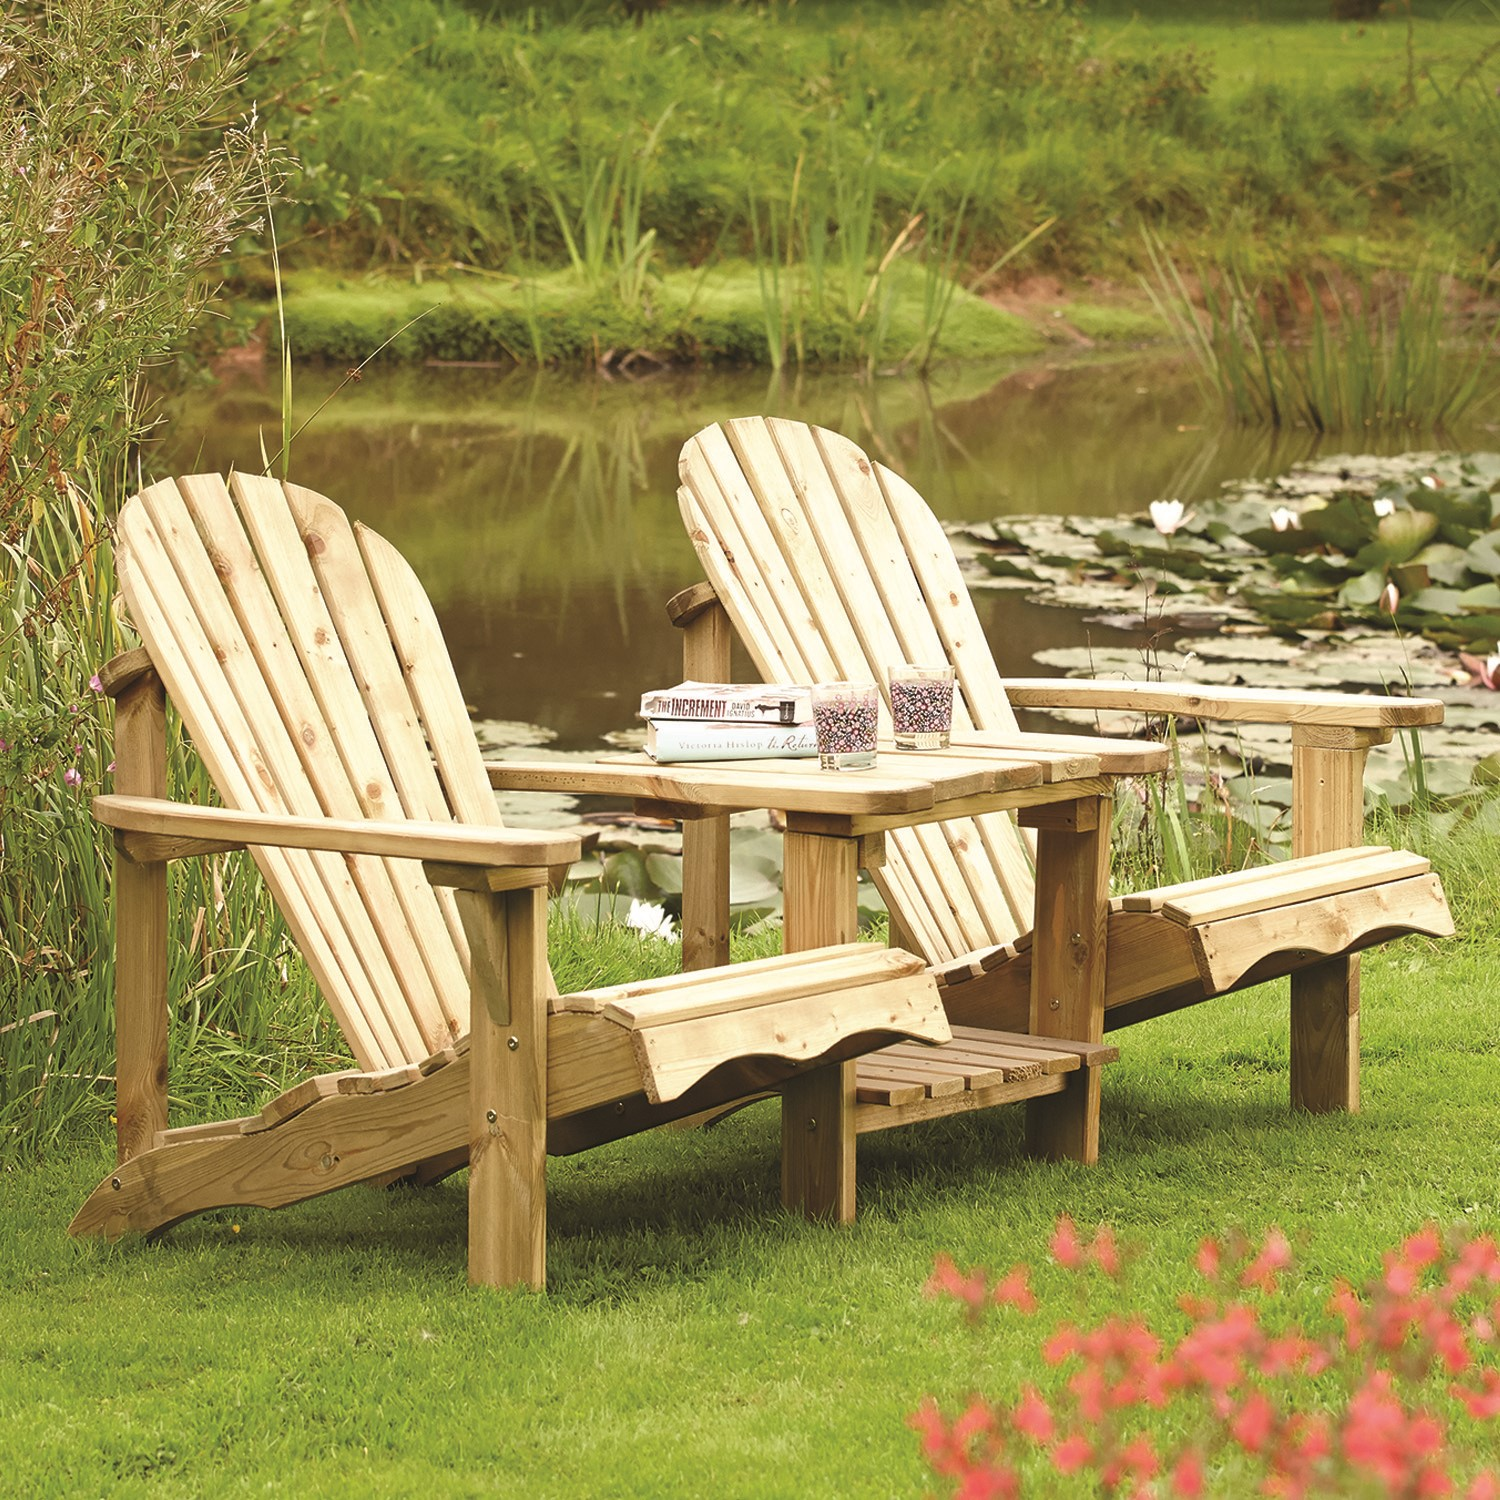 Rowlinson Softwood Garden Chairs with Adjoining Table